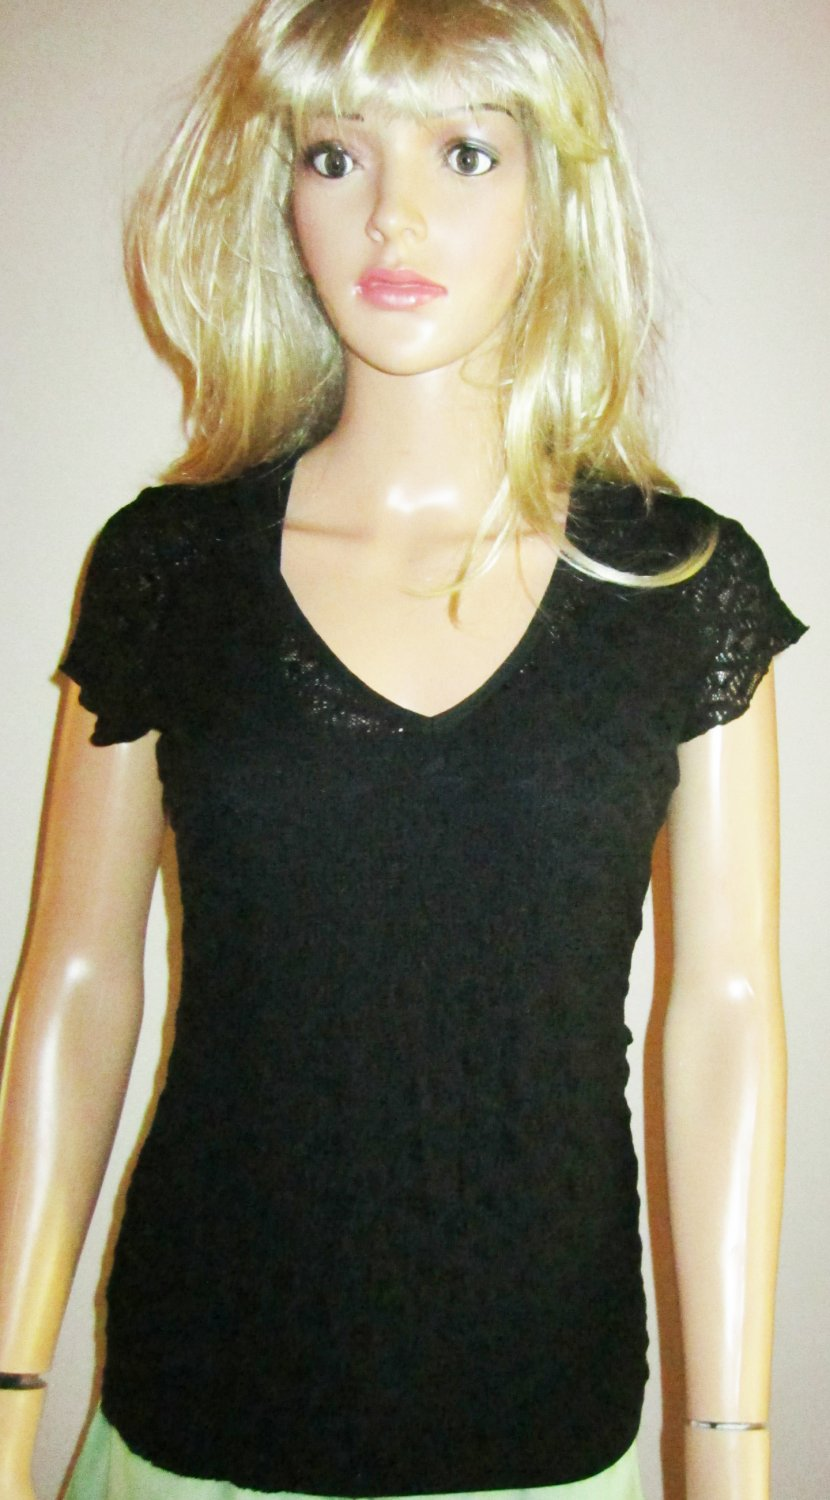 Victoria's Secret Black Short Sleeve V Neck Lace Tee Top Size Small 279219